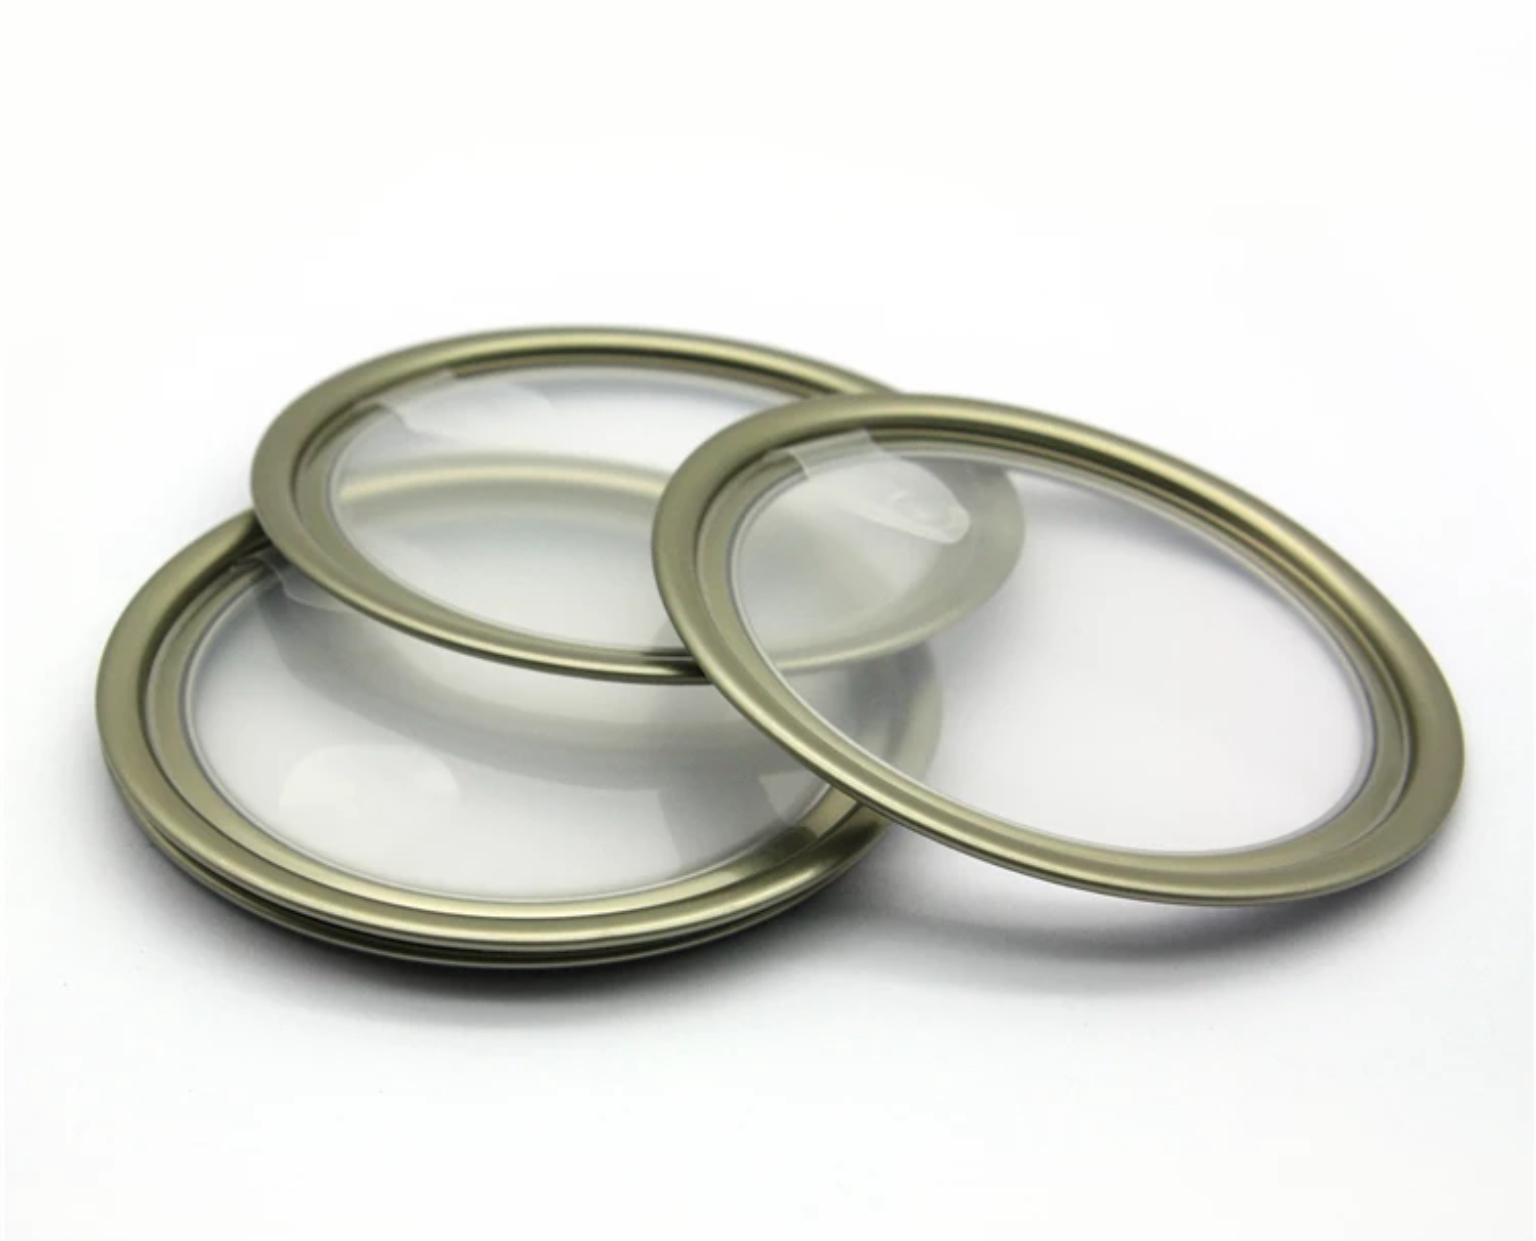 100 Clear Easy Open Peel Off Lids 73mm Diameter £30 + VAT